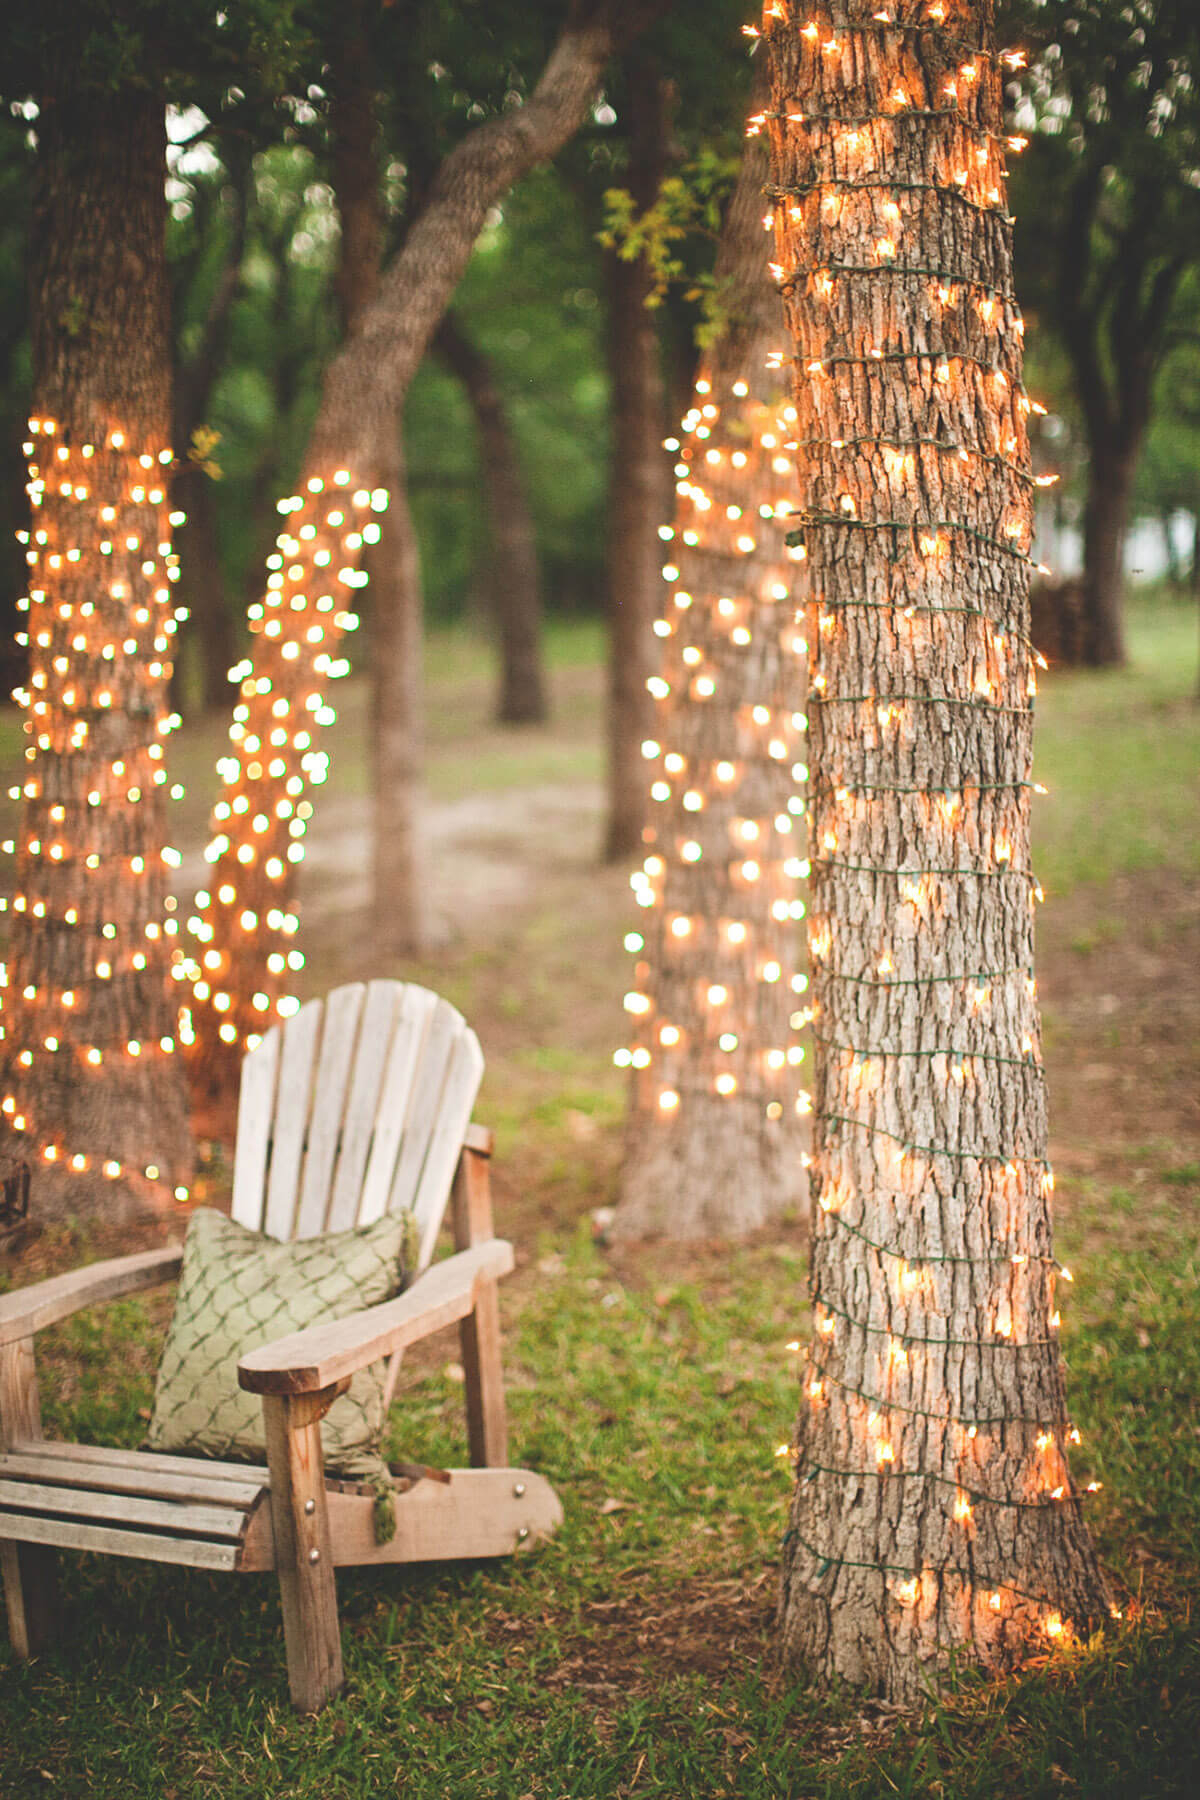 27 Best Backyard Lighting Ideas And Designs For 2019 throughout 14 Smart Initiatives of How to Improve Lighting Ideas For Backyard Party